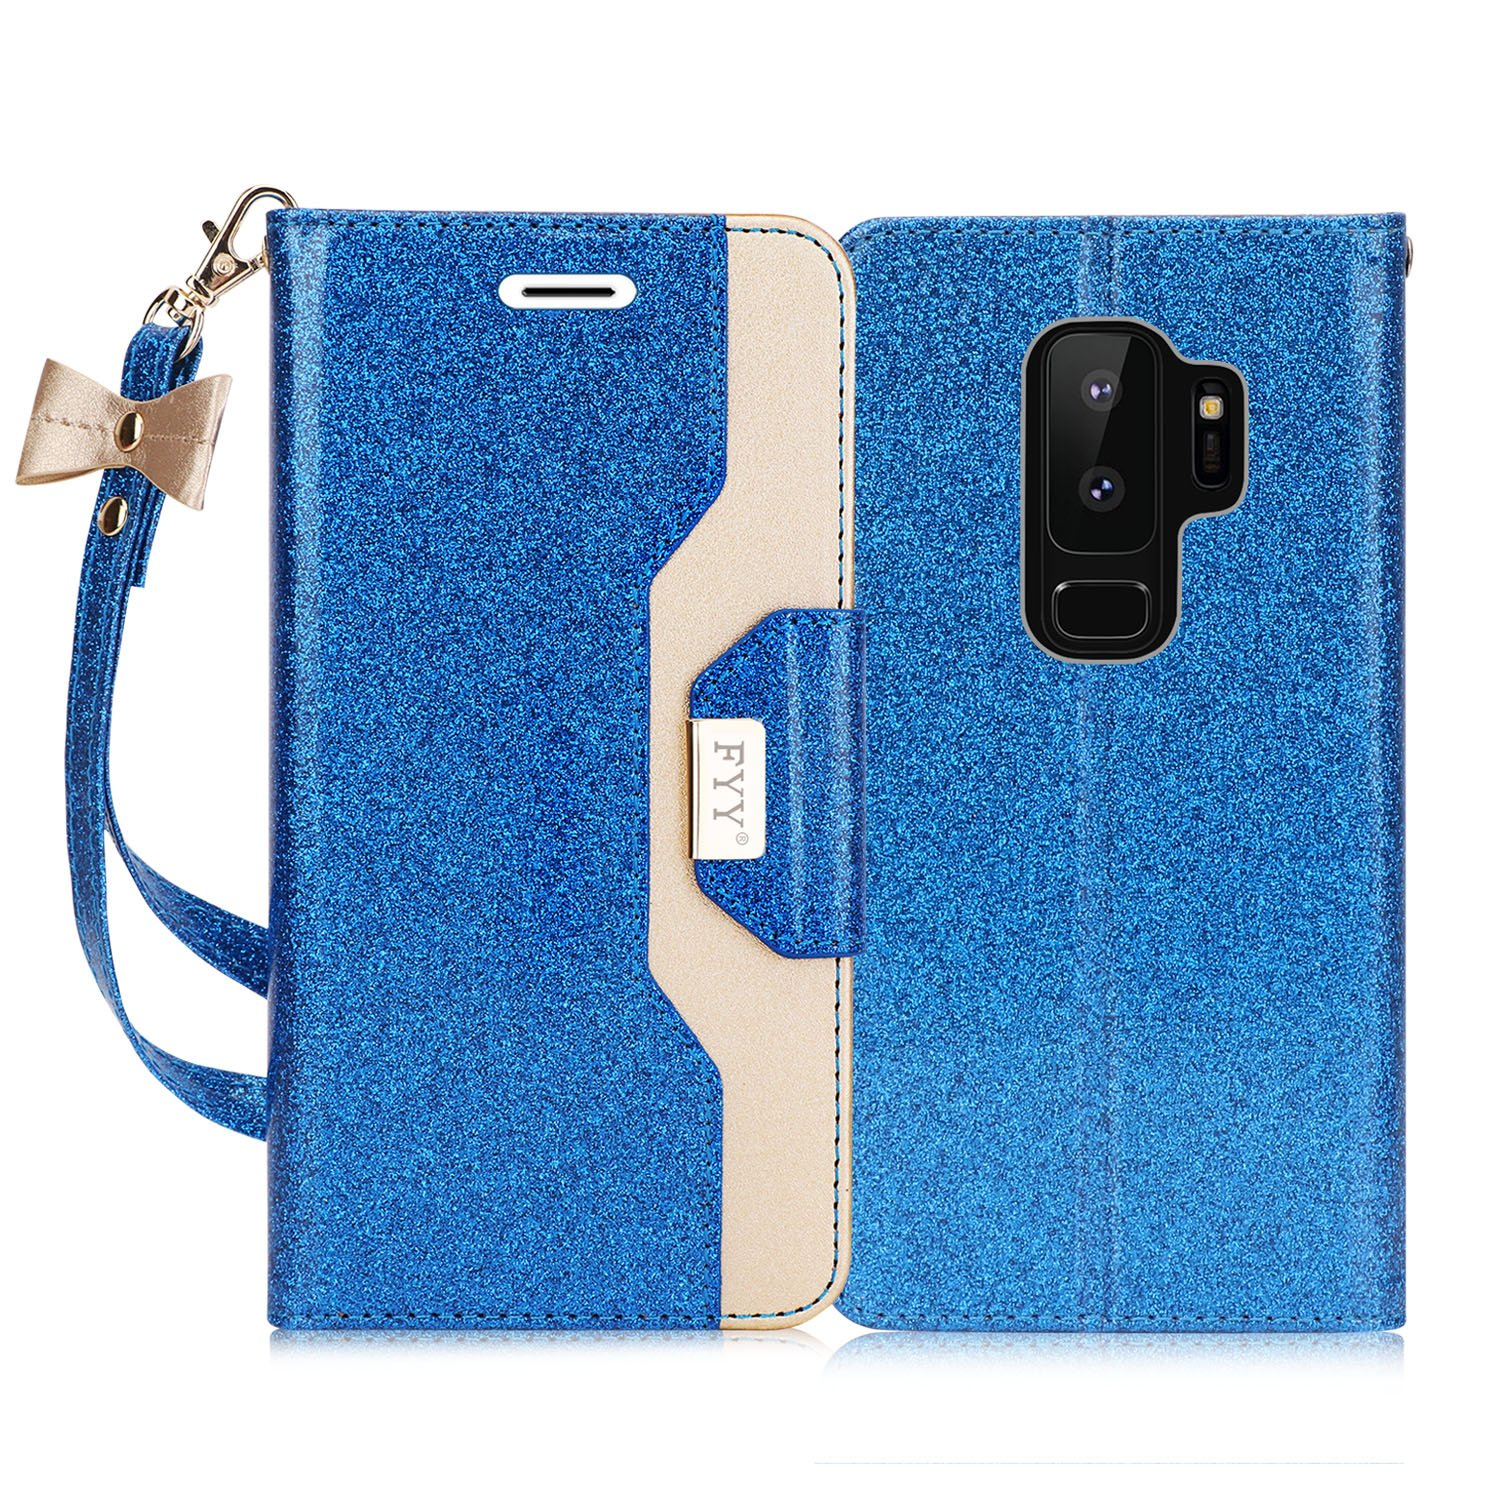 FYY Case for Galaxy S9 Plus, Inside Makeup Mirror Leather Wallet Case with Prevent Card Information Leaking Technique and for Samsung Galaxy S9 Plus Navy Kickstand Feature